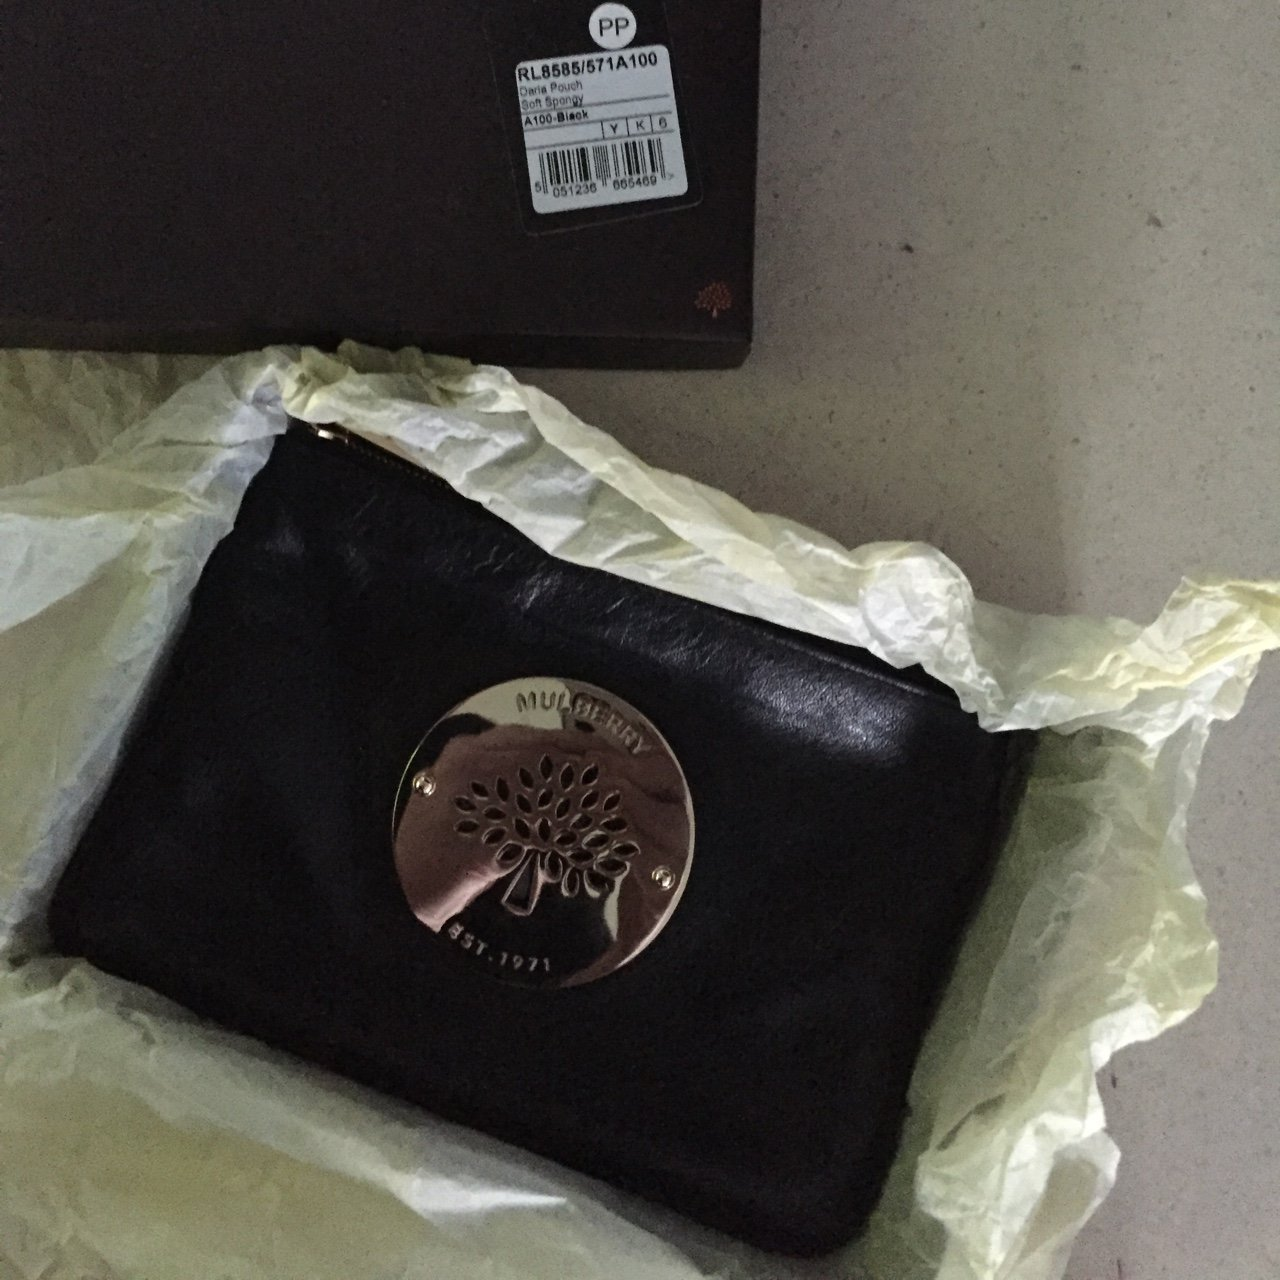 Genuine Mulberry Daria pouch in black. Bought by me from of - Depop 33fe542c11a55